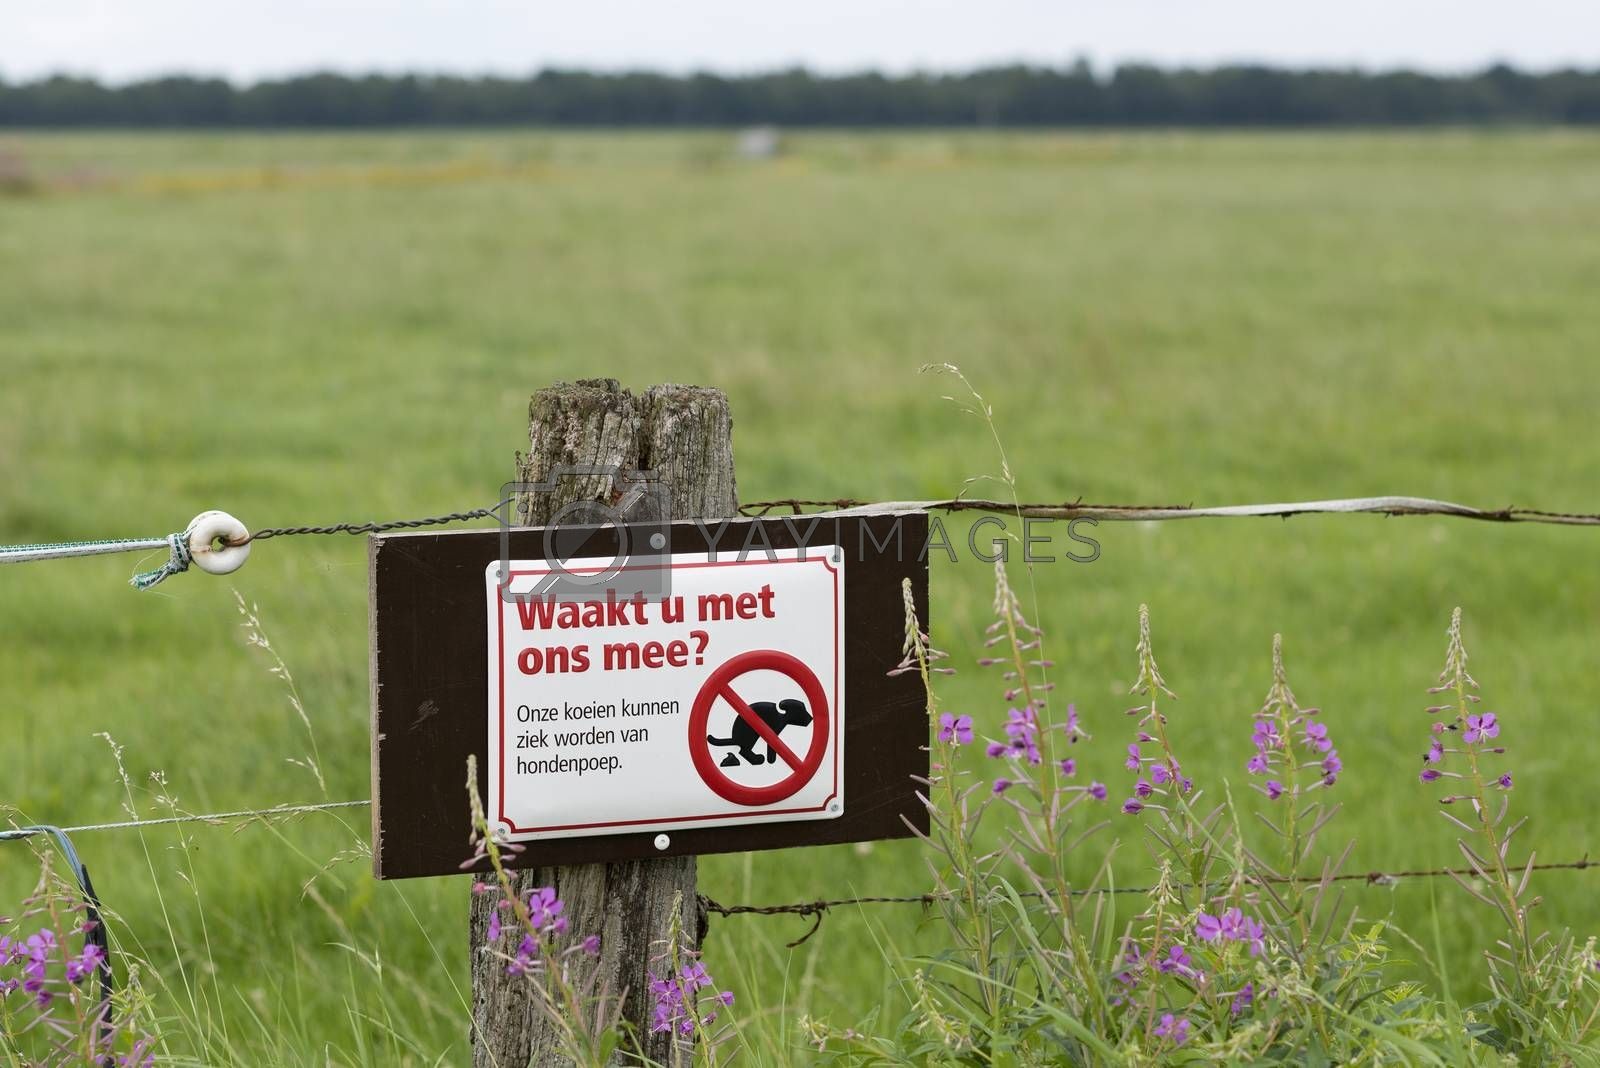 Join us watching? Sign against pathogenic dog poo near pasture for cows